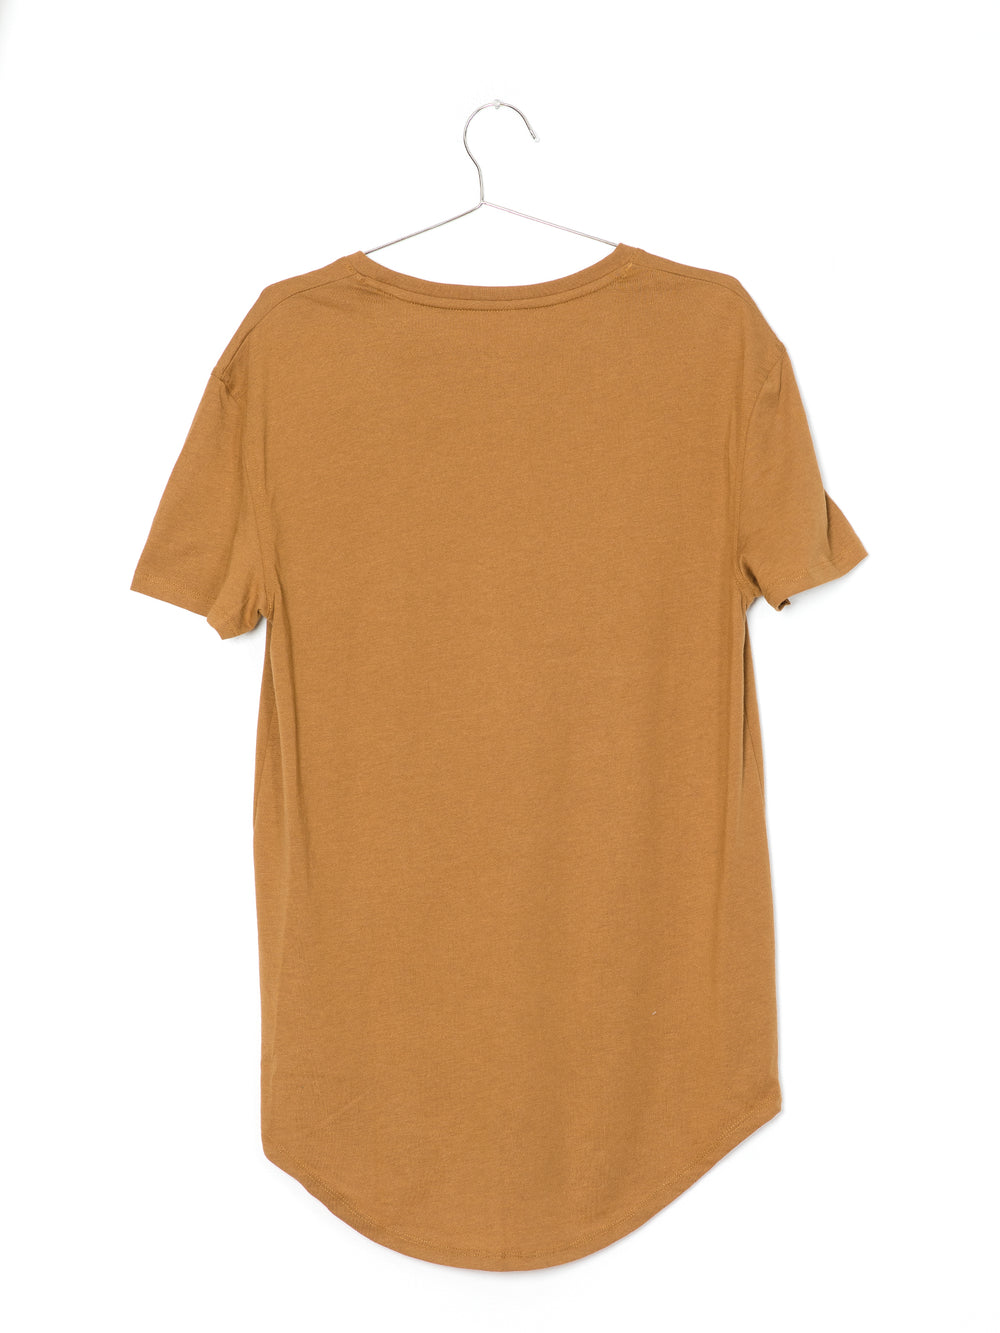 MENS LONGLINE T - TIMBER